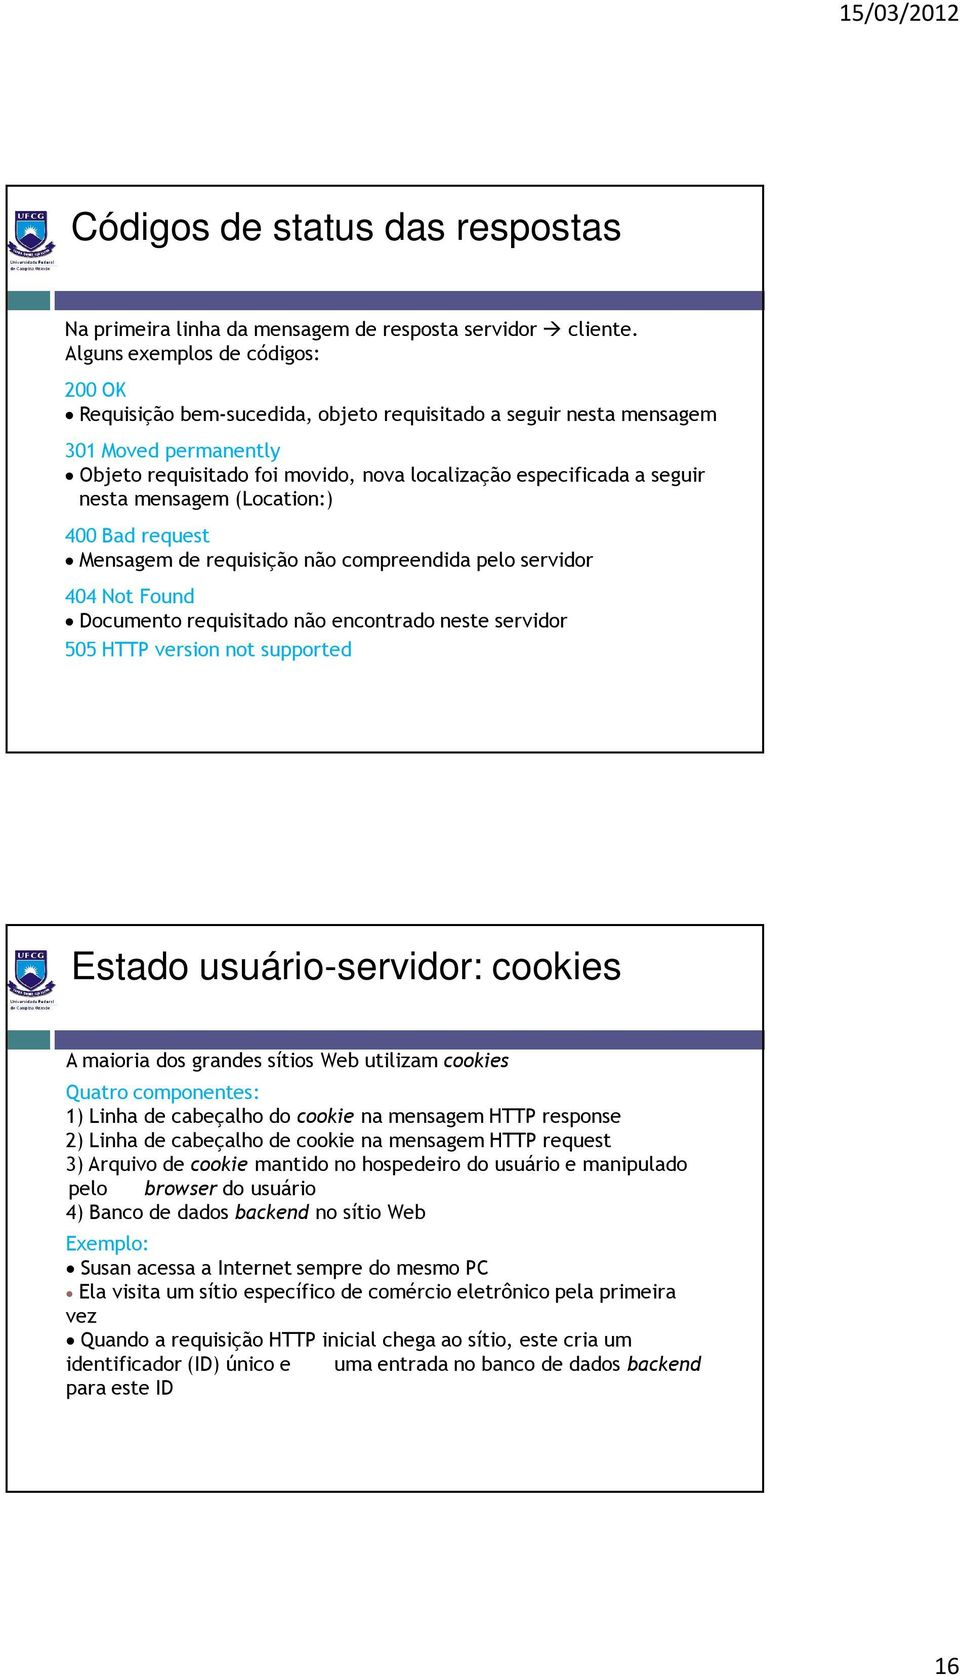 nesta mensagem (Location:) 400 Bad request Mensagem de requisição não compreendida pelo servidor 404 Not Found Documento requisitado não encontrado neste servidor 505 HTTP version not supported 31